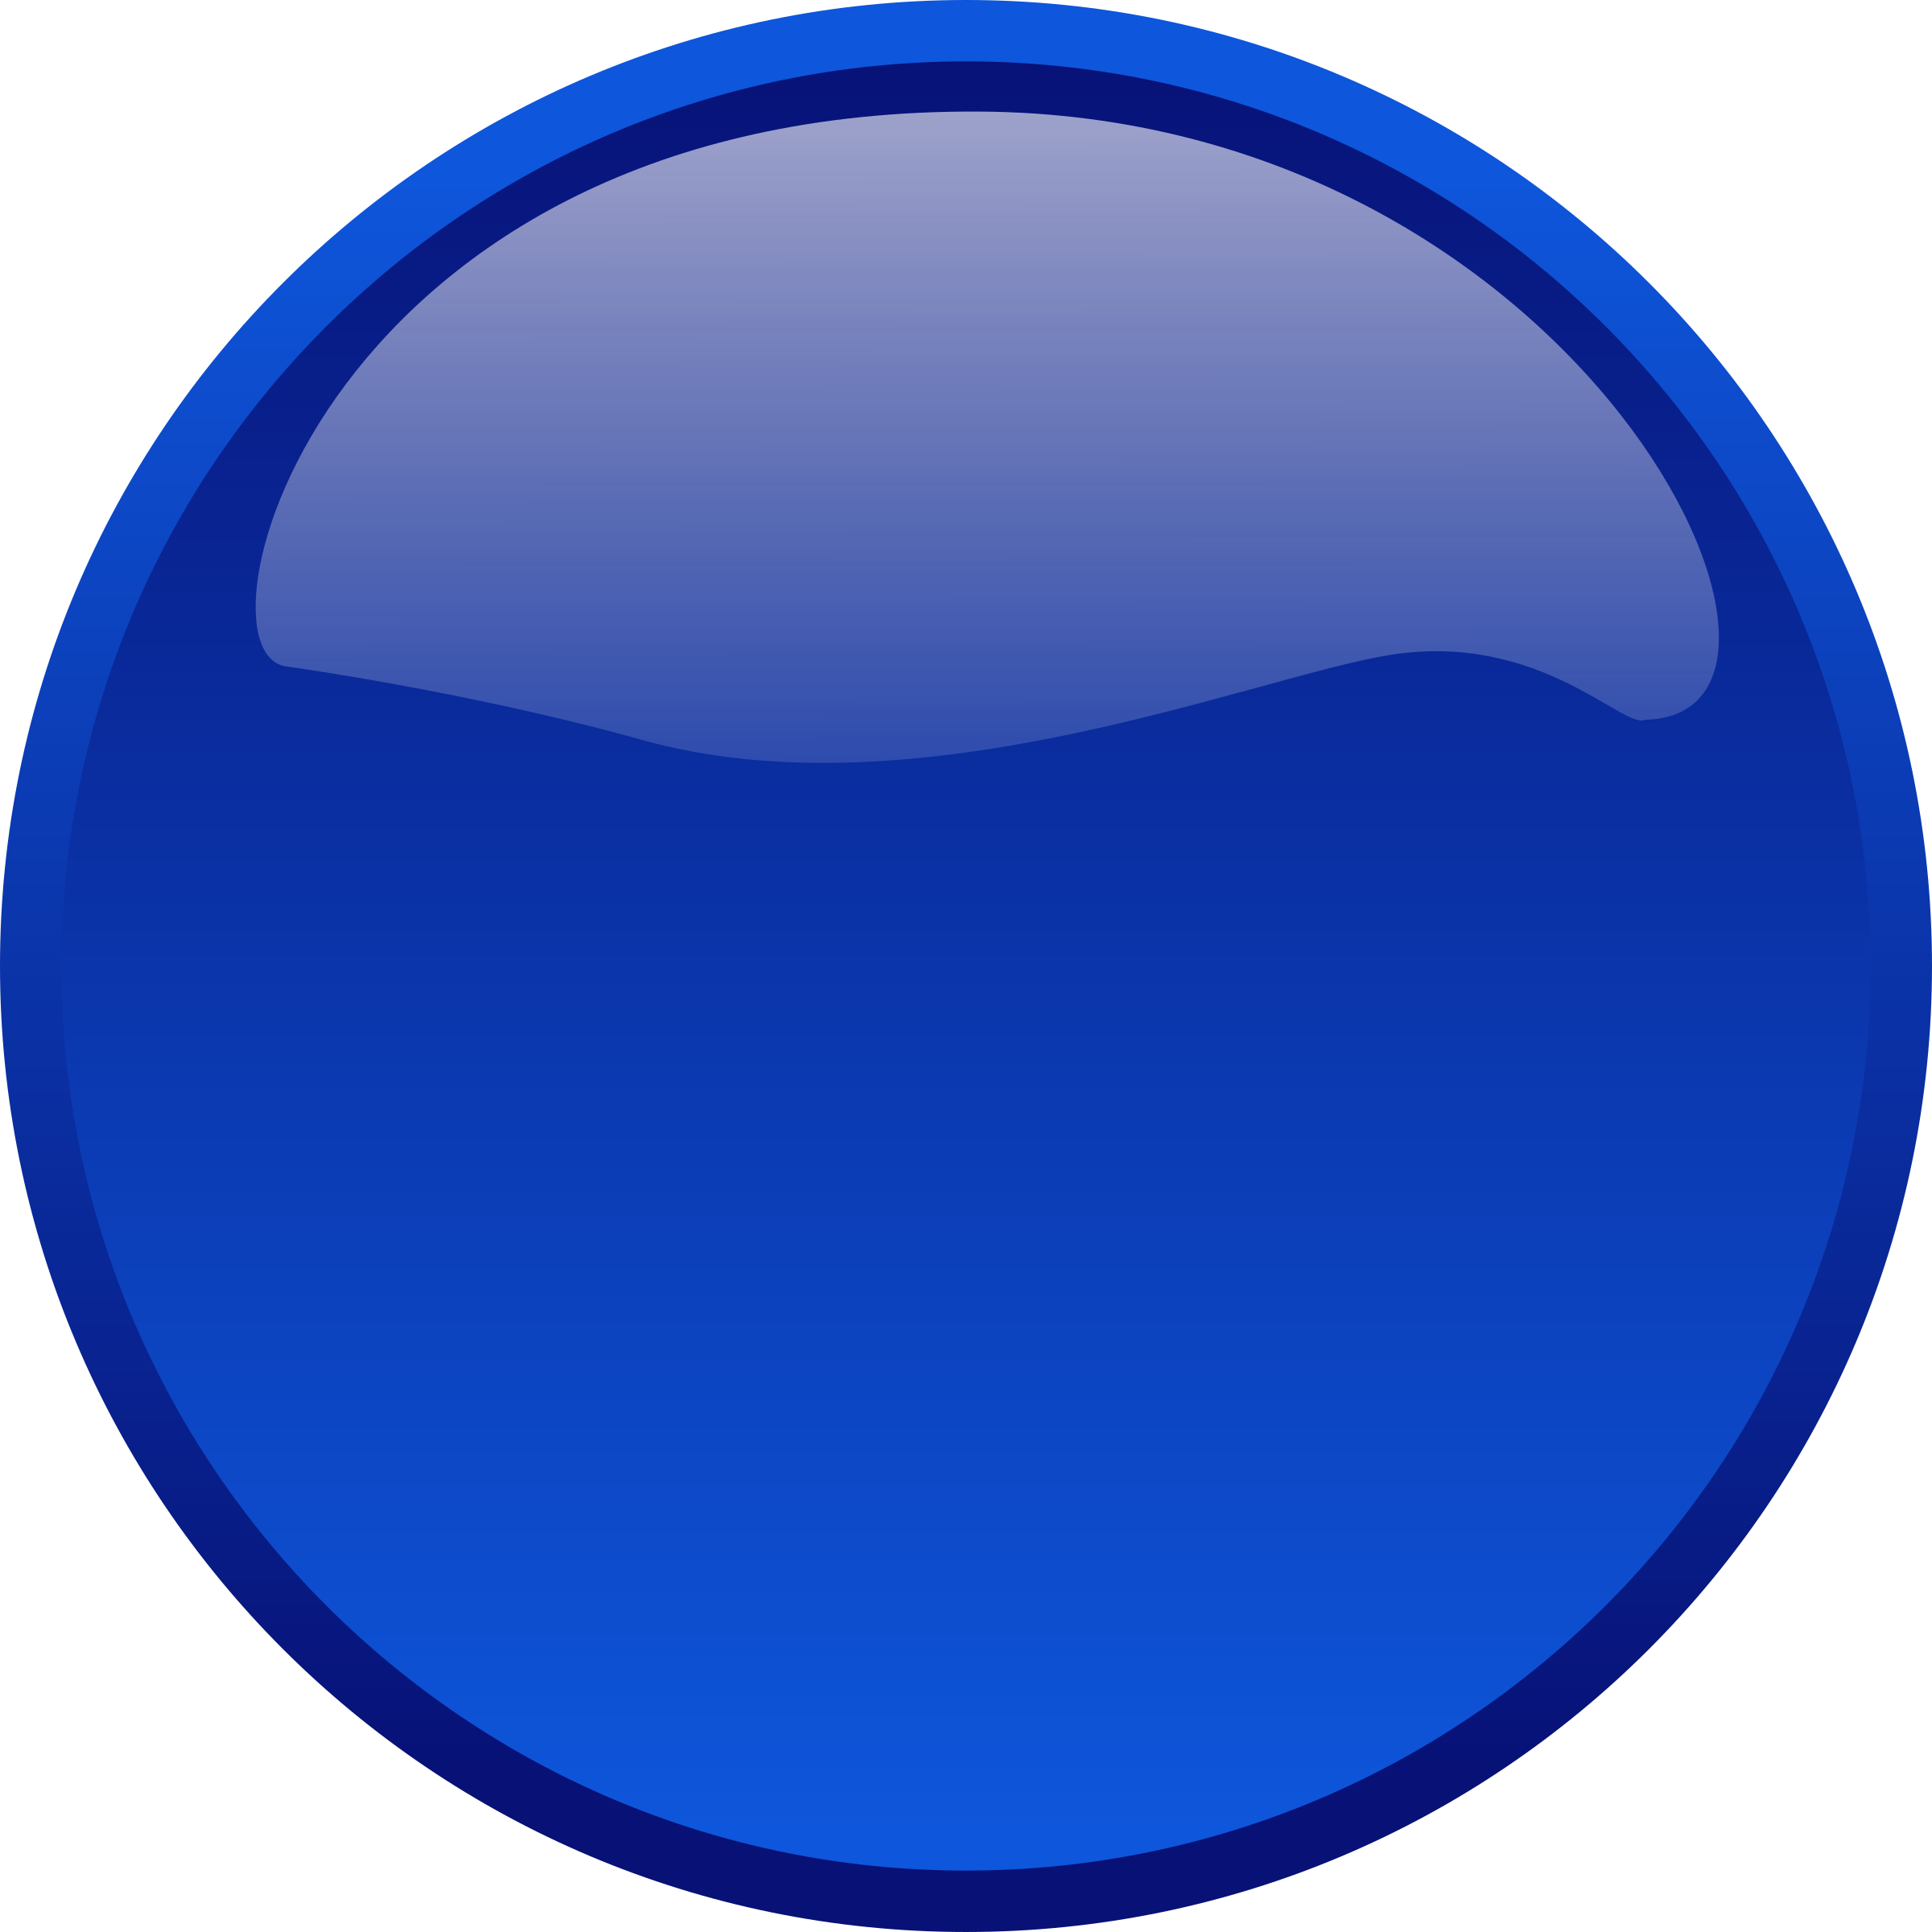 Button blue big image. Pin clipart round